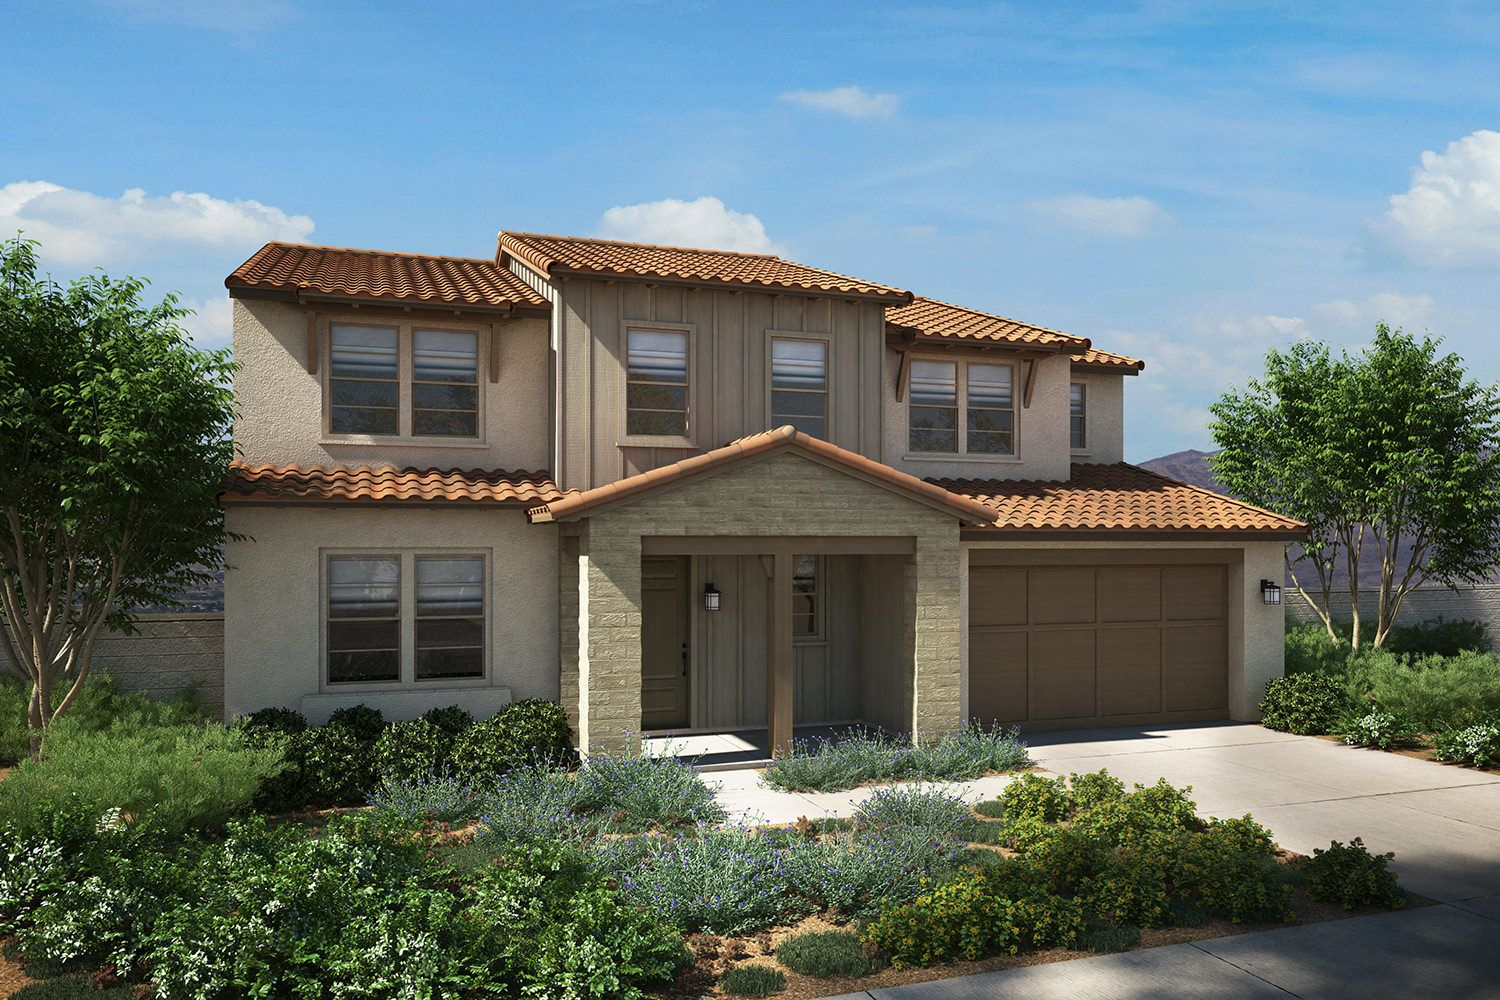 Executive anvil pardee homes gated community house styles